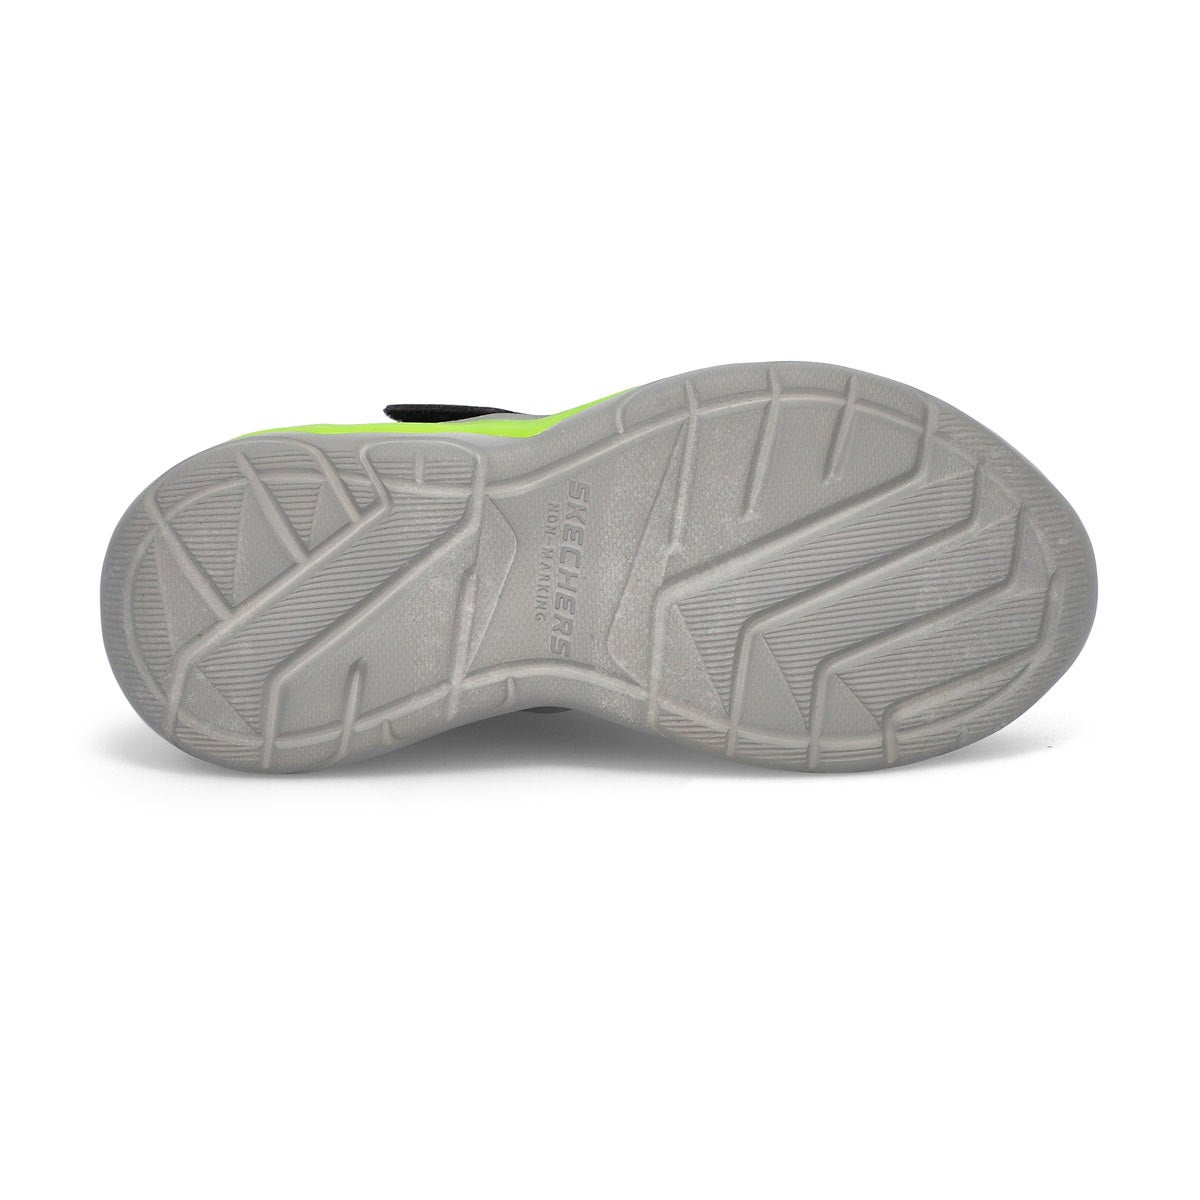 Boys' Erupters IV Sneaker -Black/Lime Green